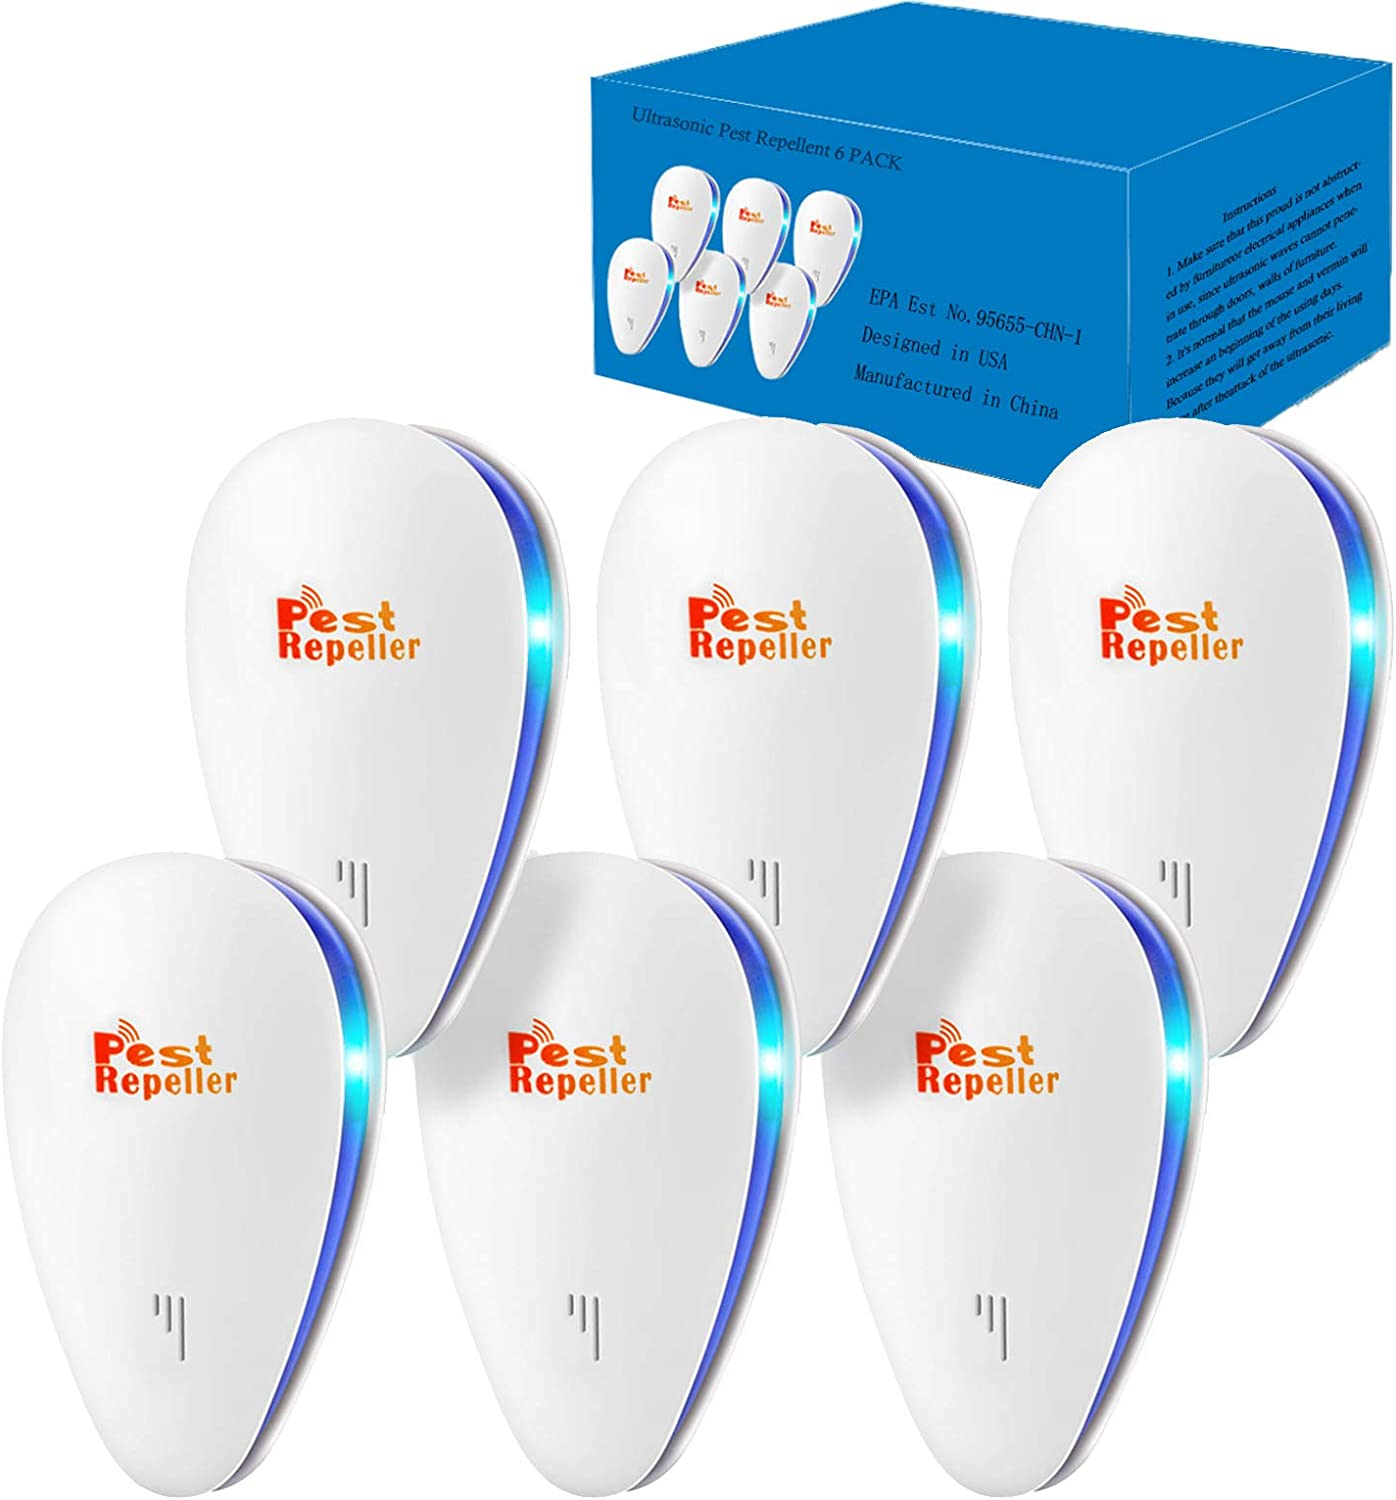 TopLAD Ultrasonic Pest Repellent 6 Pack, Electronic Pest Repeller Pest Control for Mosquito, Spider, Fly, Roach, Termite, Bug, Rodent Plug in Indoor